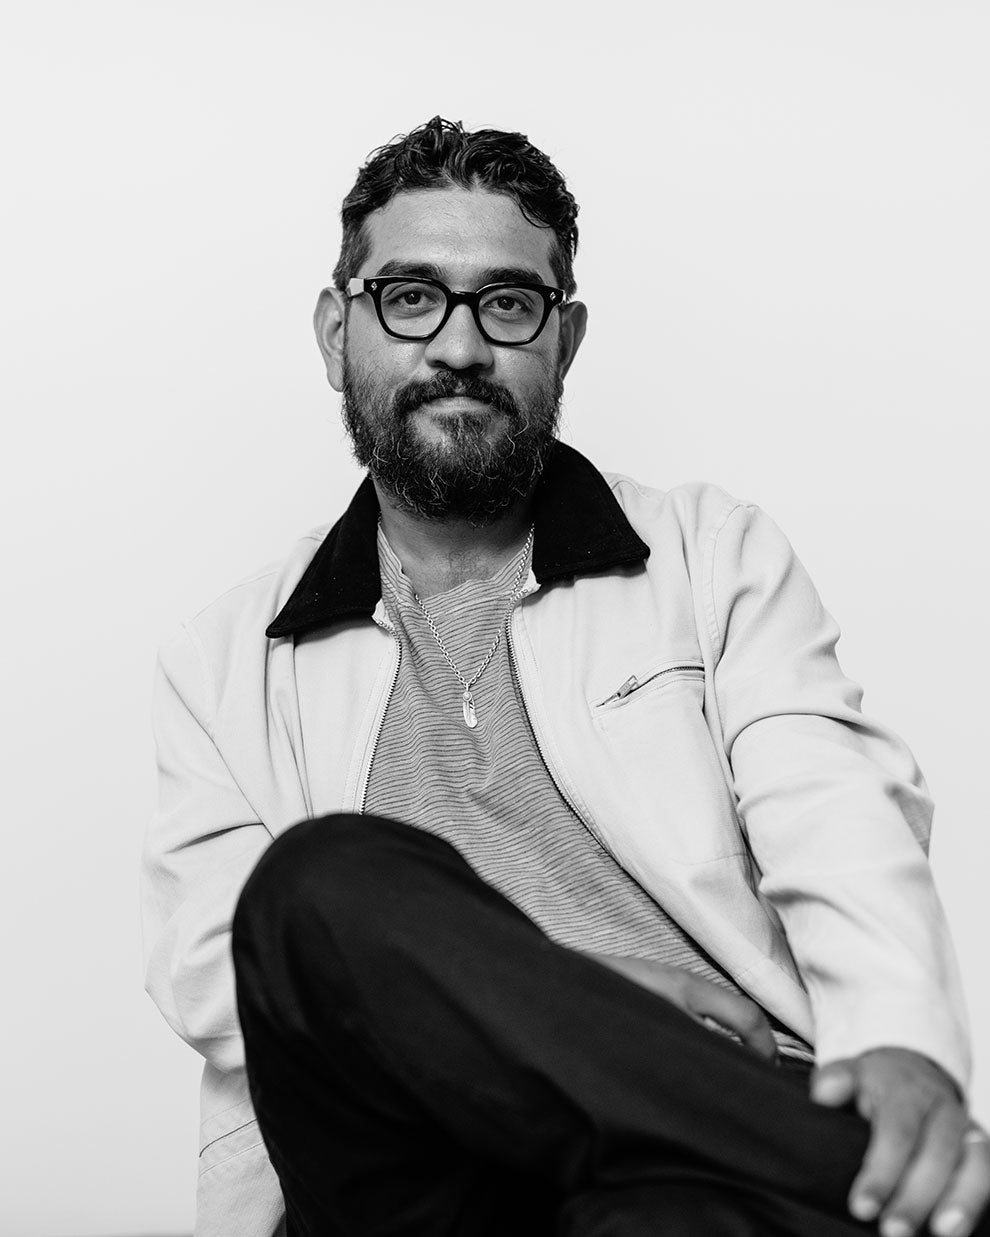 Image of Garrett Leight, Founder Garrett Leight California Optical